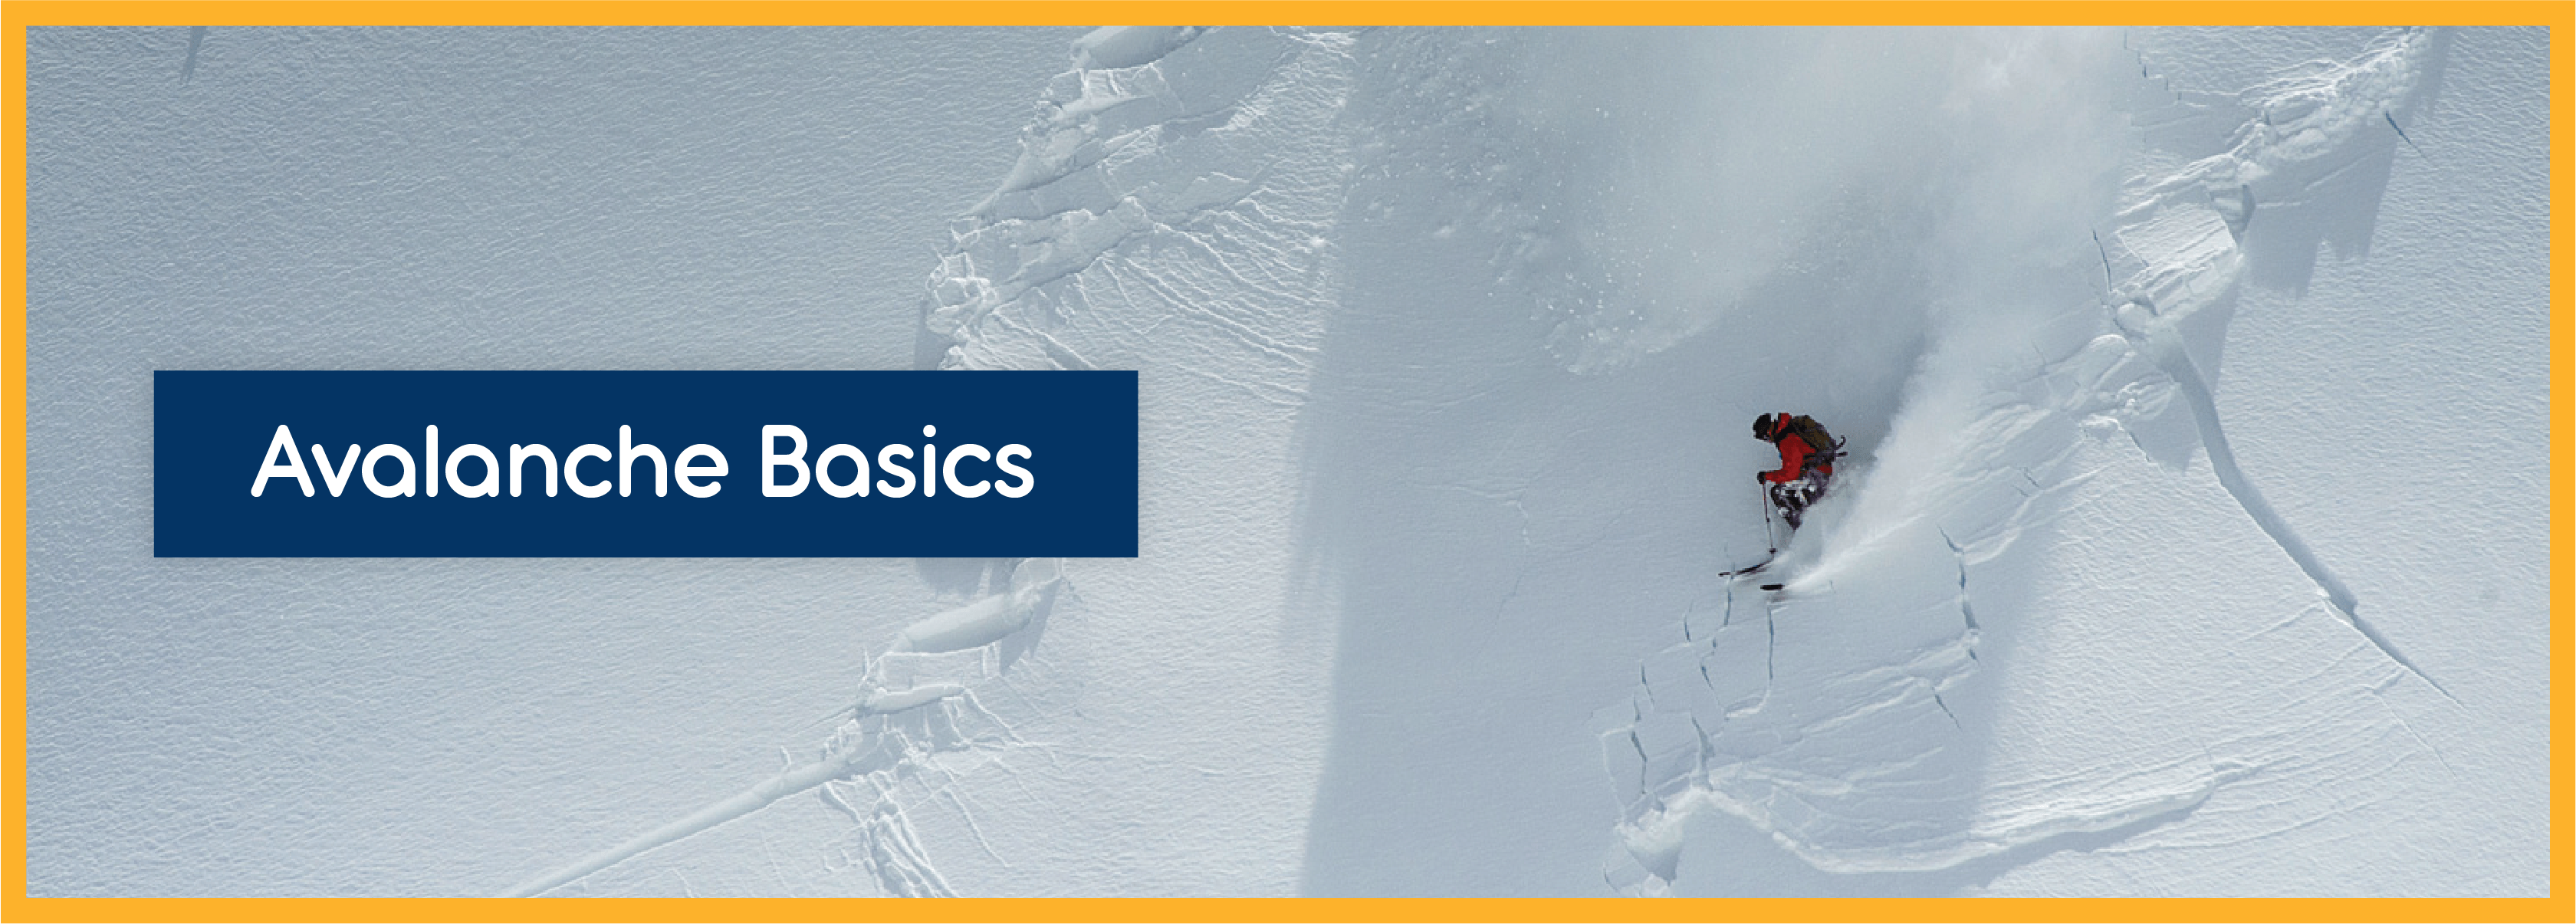 Snowsafe Avalanche Basics - Snowsafe Avalanche Safety Centre